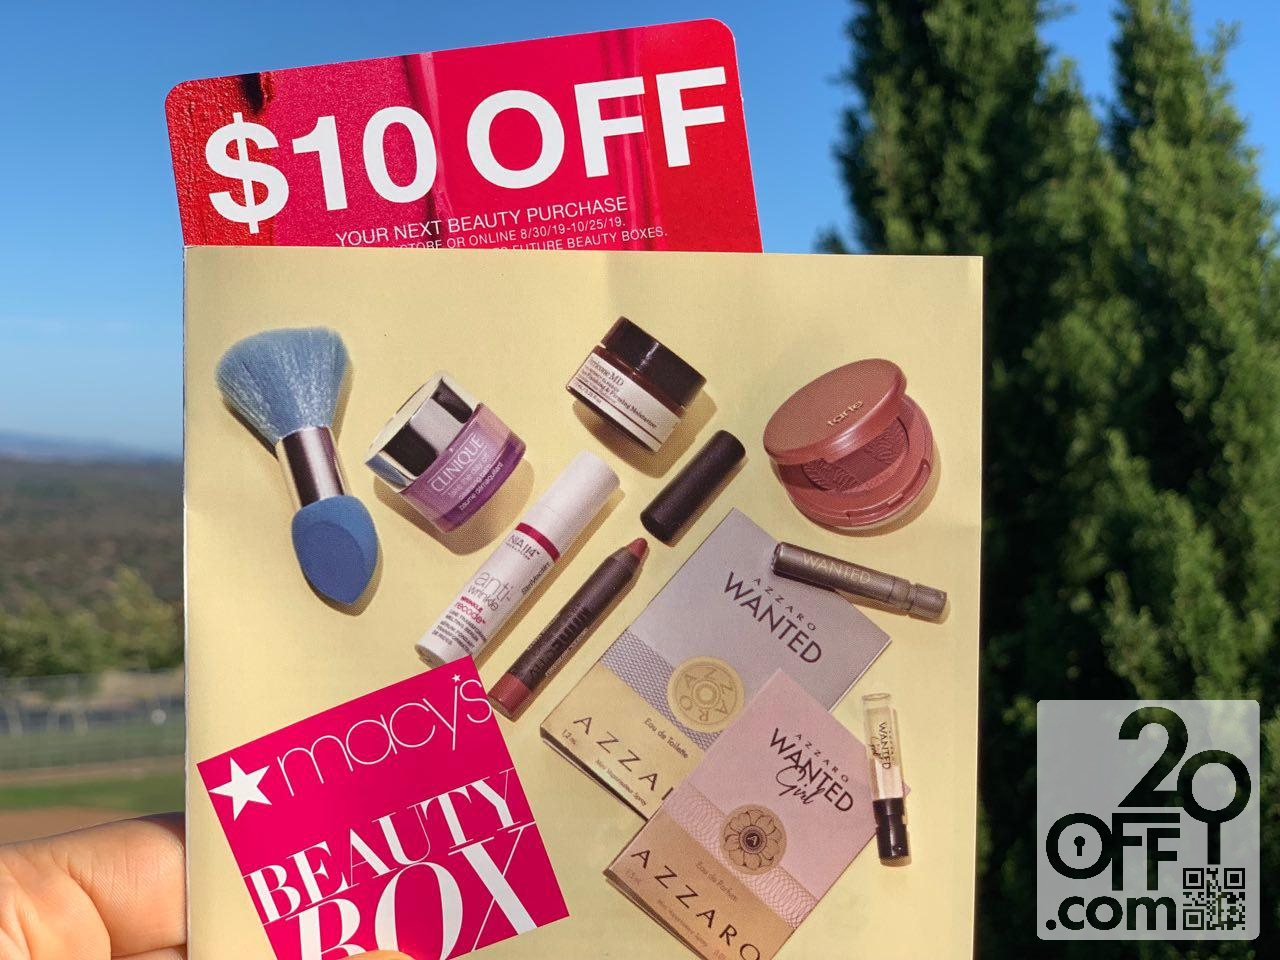 Macys Beauty Box $10 OFF Coupon